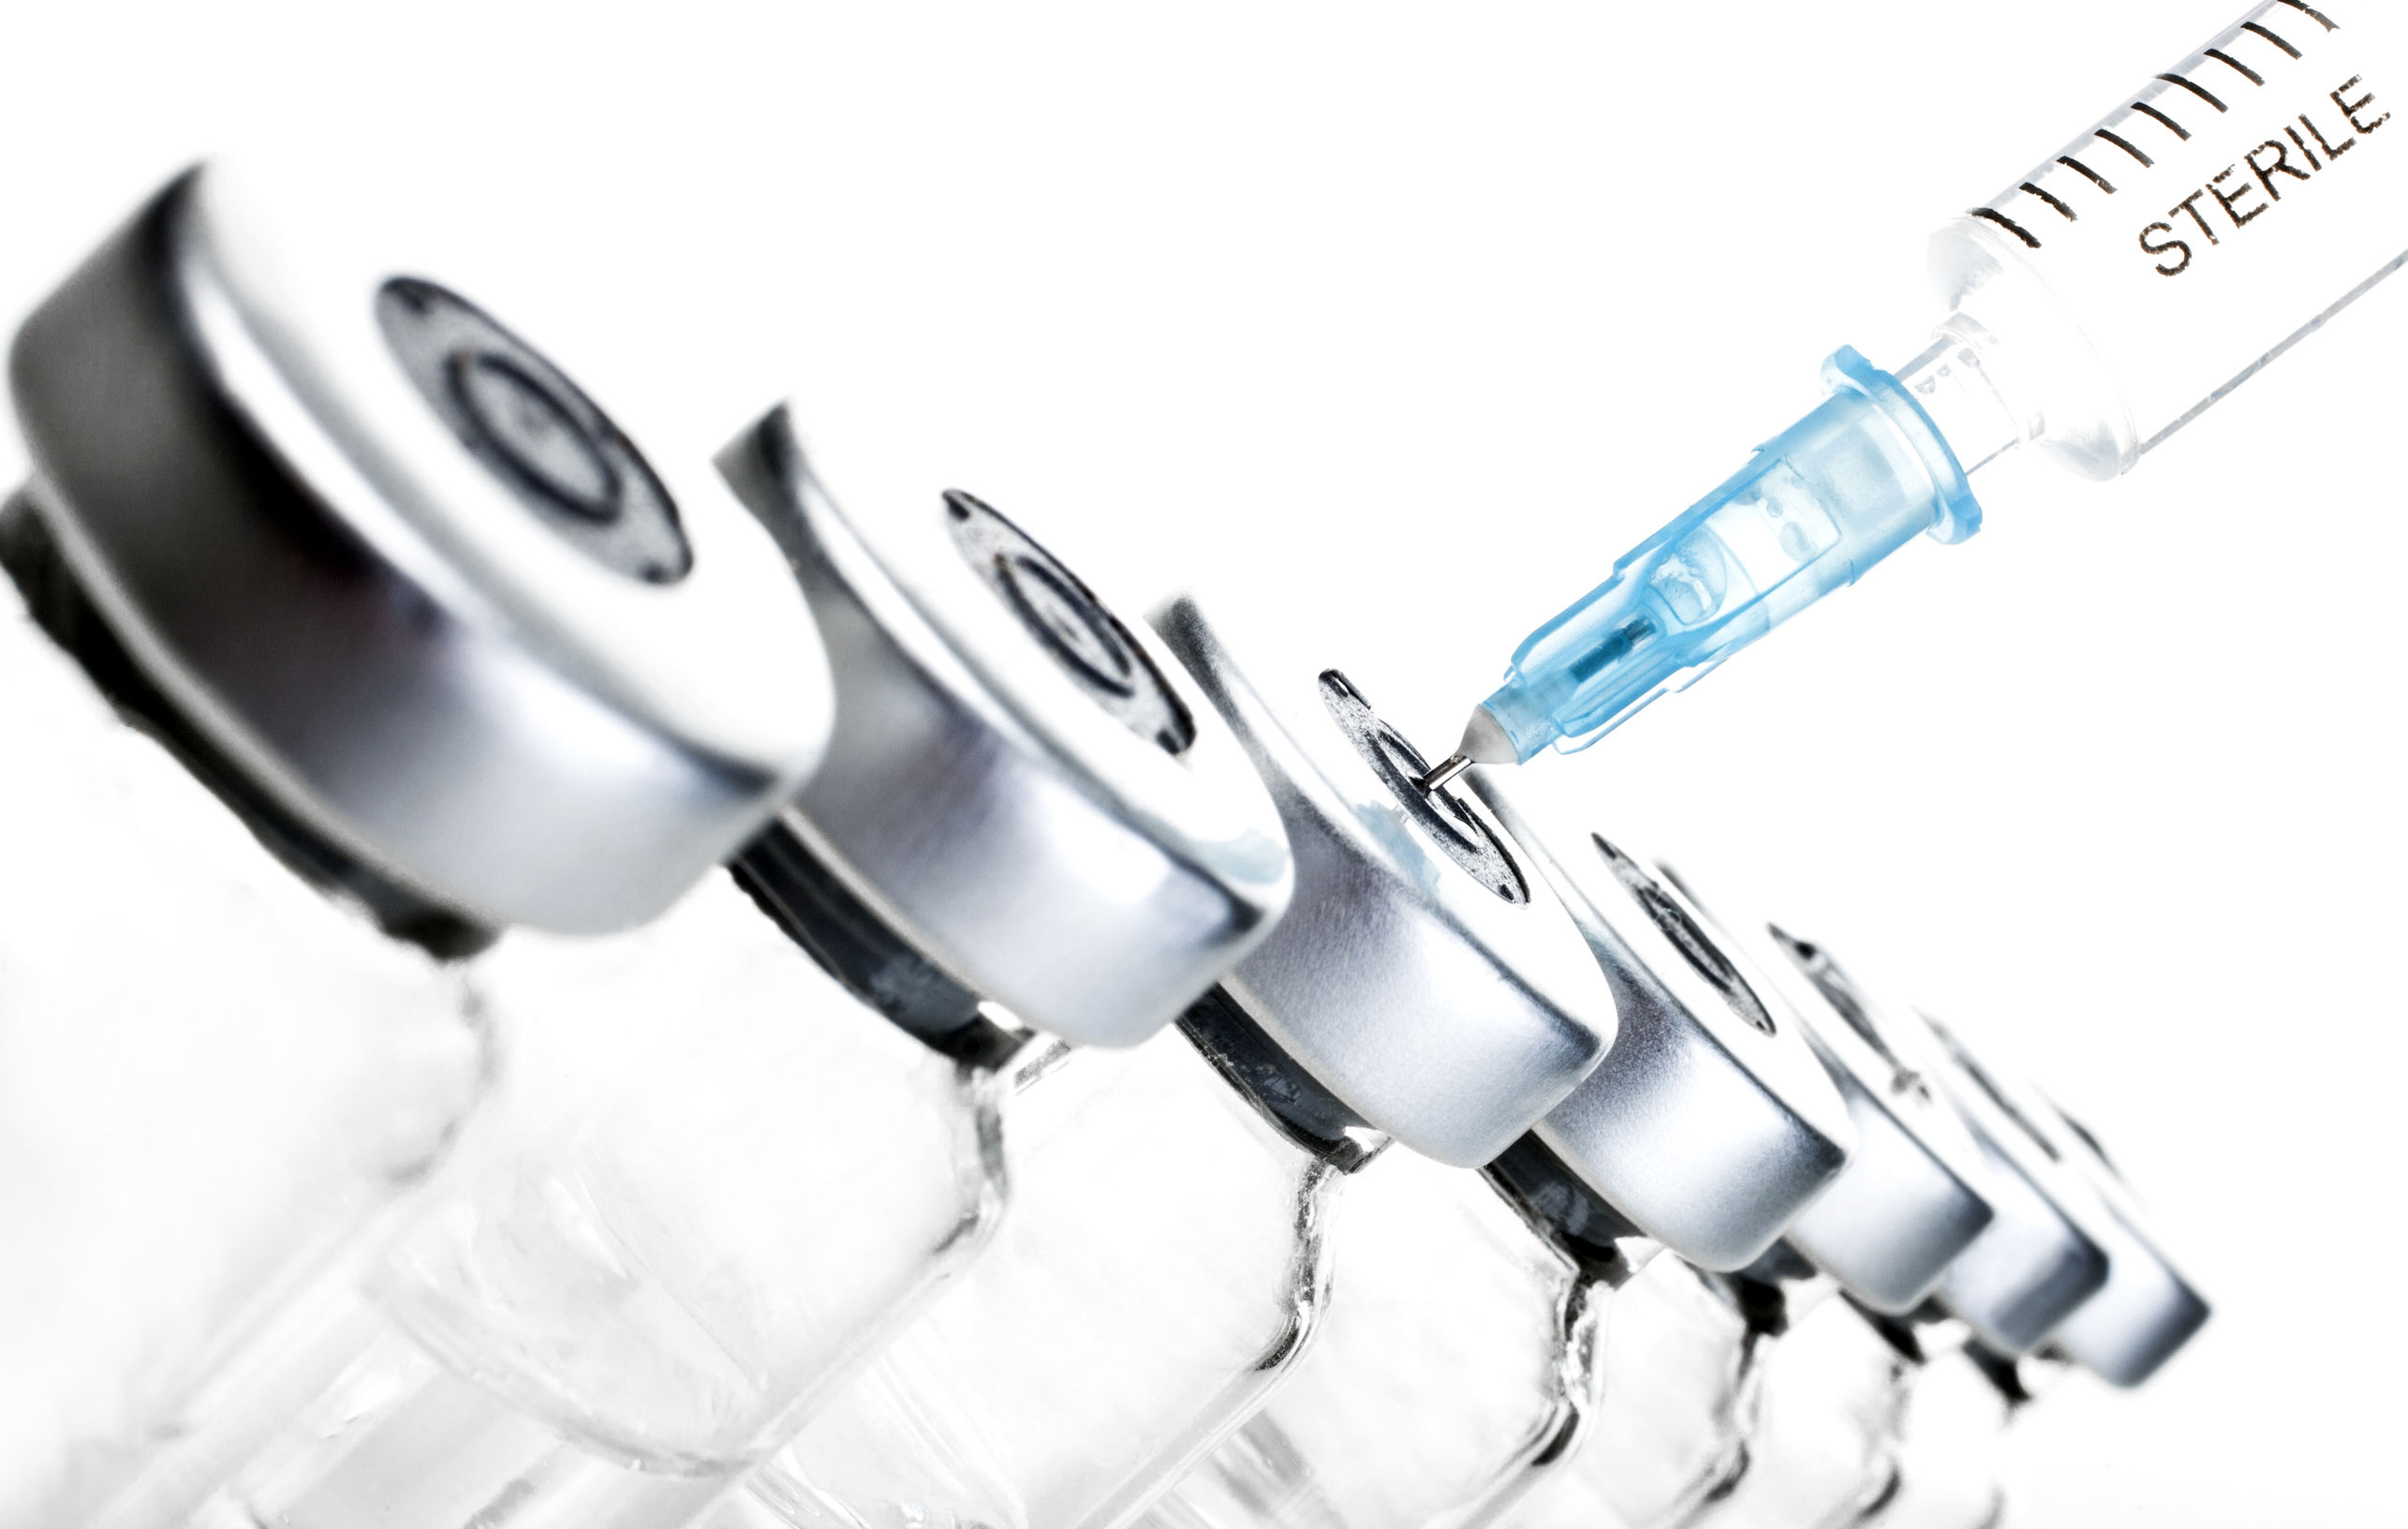 glass medicine vials and hualuronic collagen or flu syringe with TriMix injections for erectile dysfunction